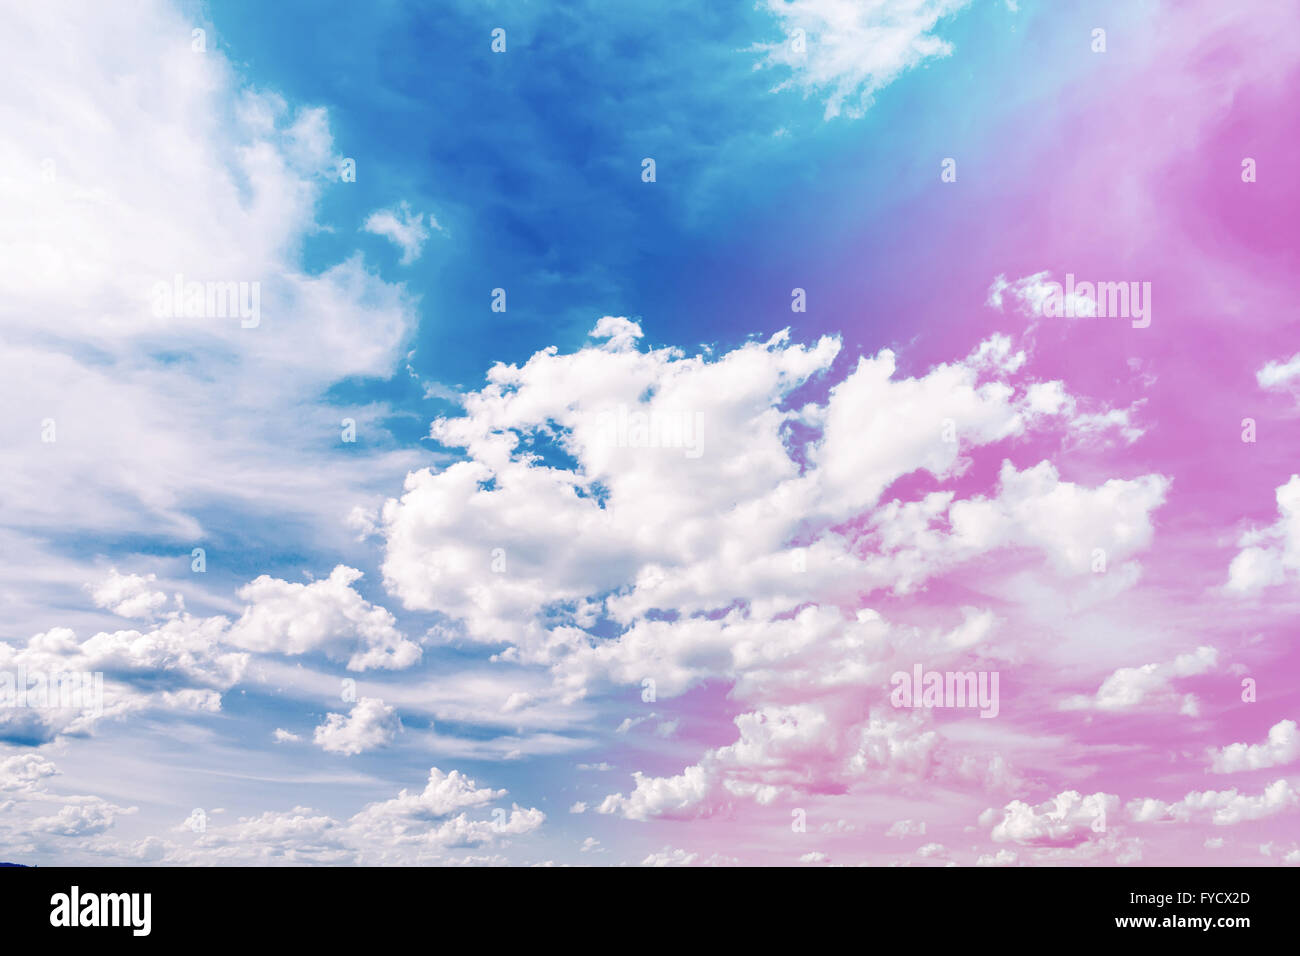 Spring Or Summer Blue Sky With Clouds In In Rose Quartz And Serenity